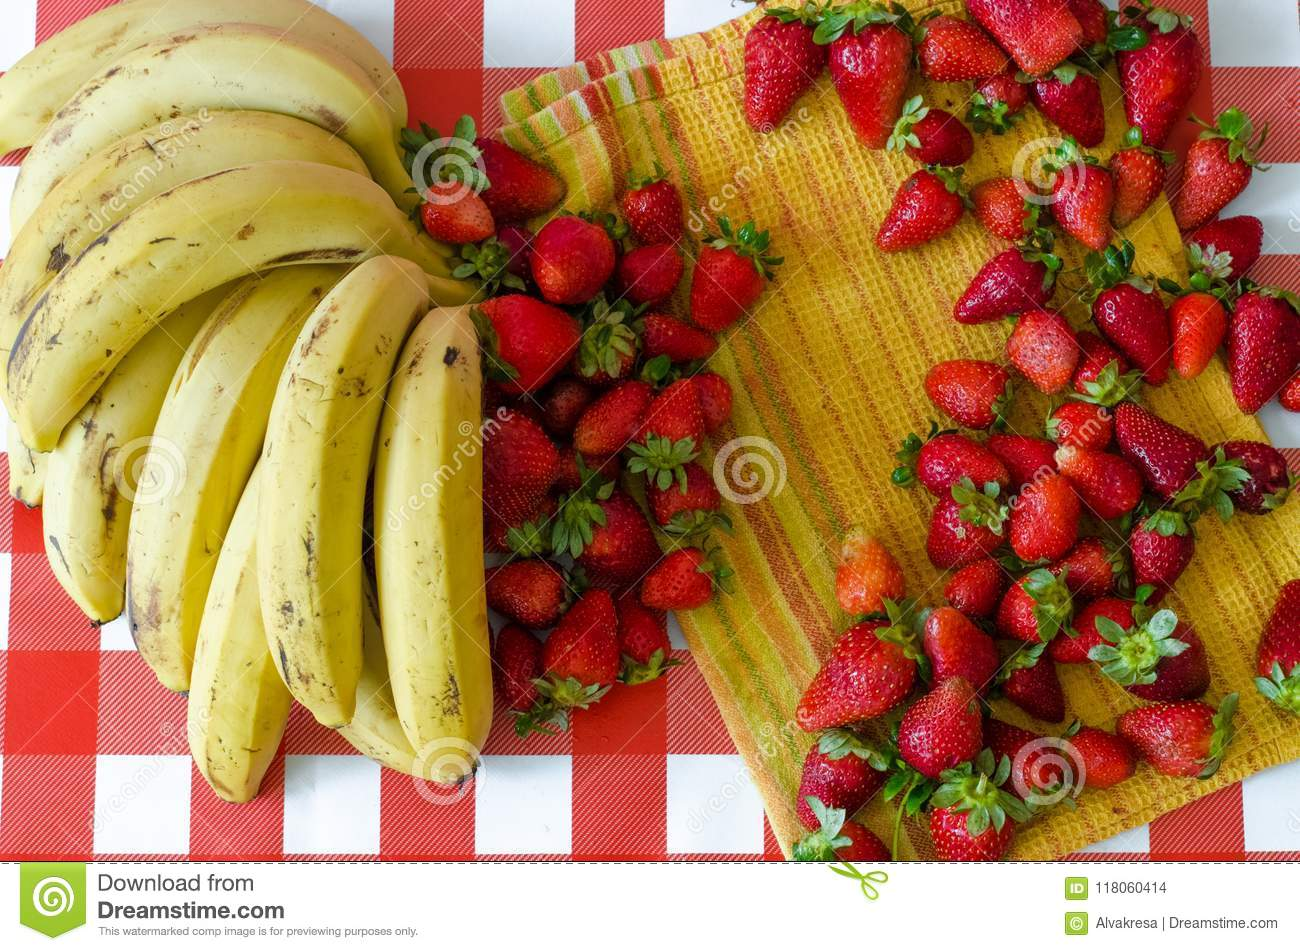 Summer fruits from market, a lot of ripe strawberries and big bunch of yellow bananas